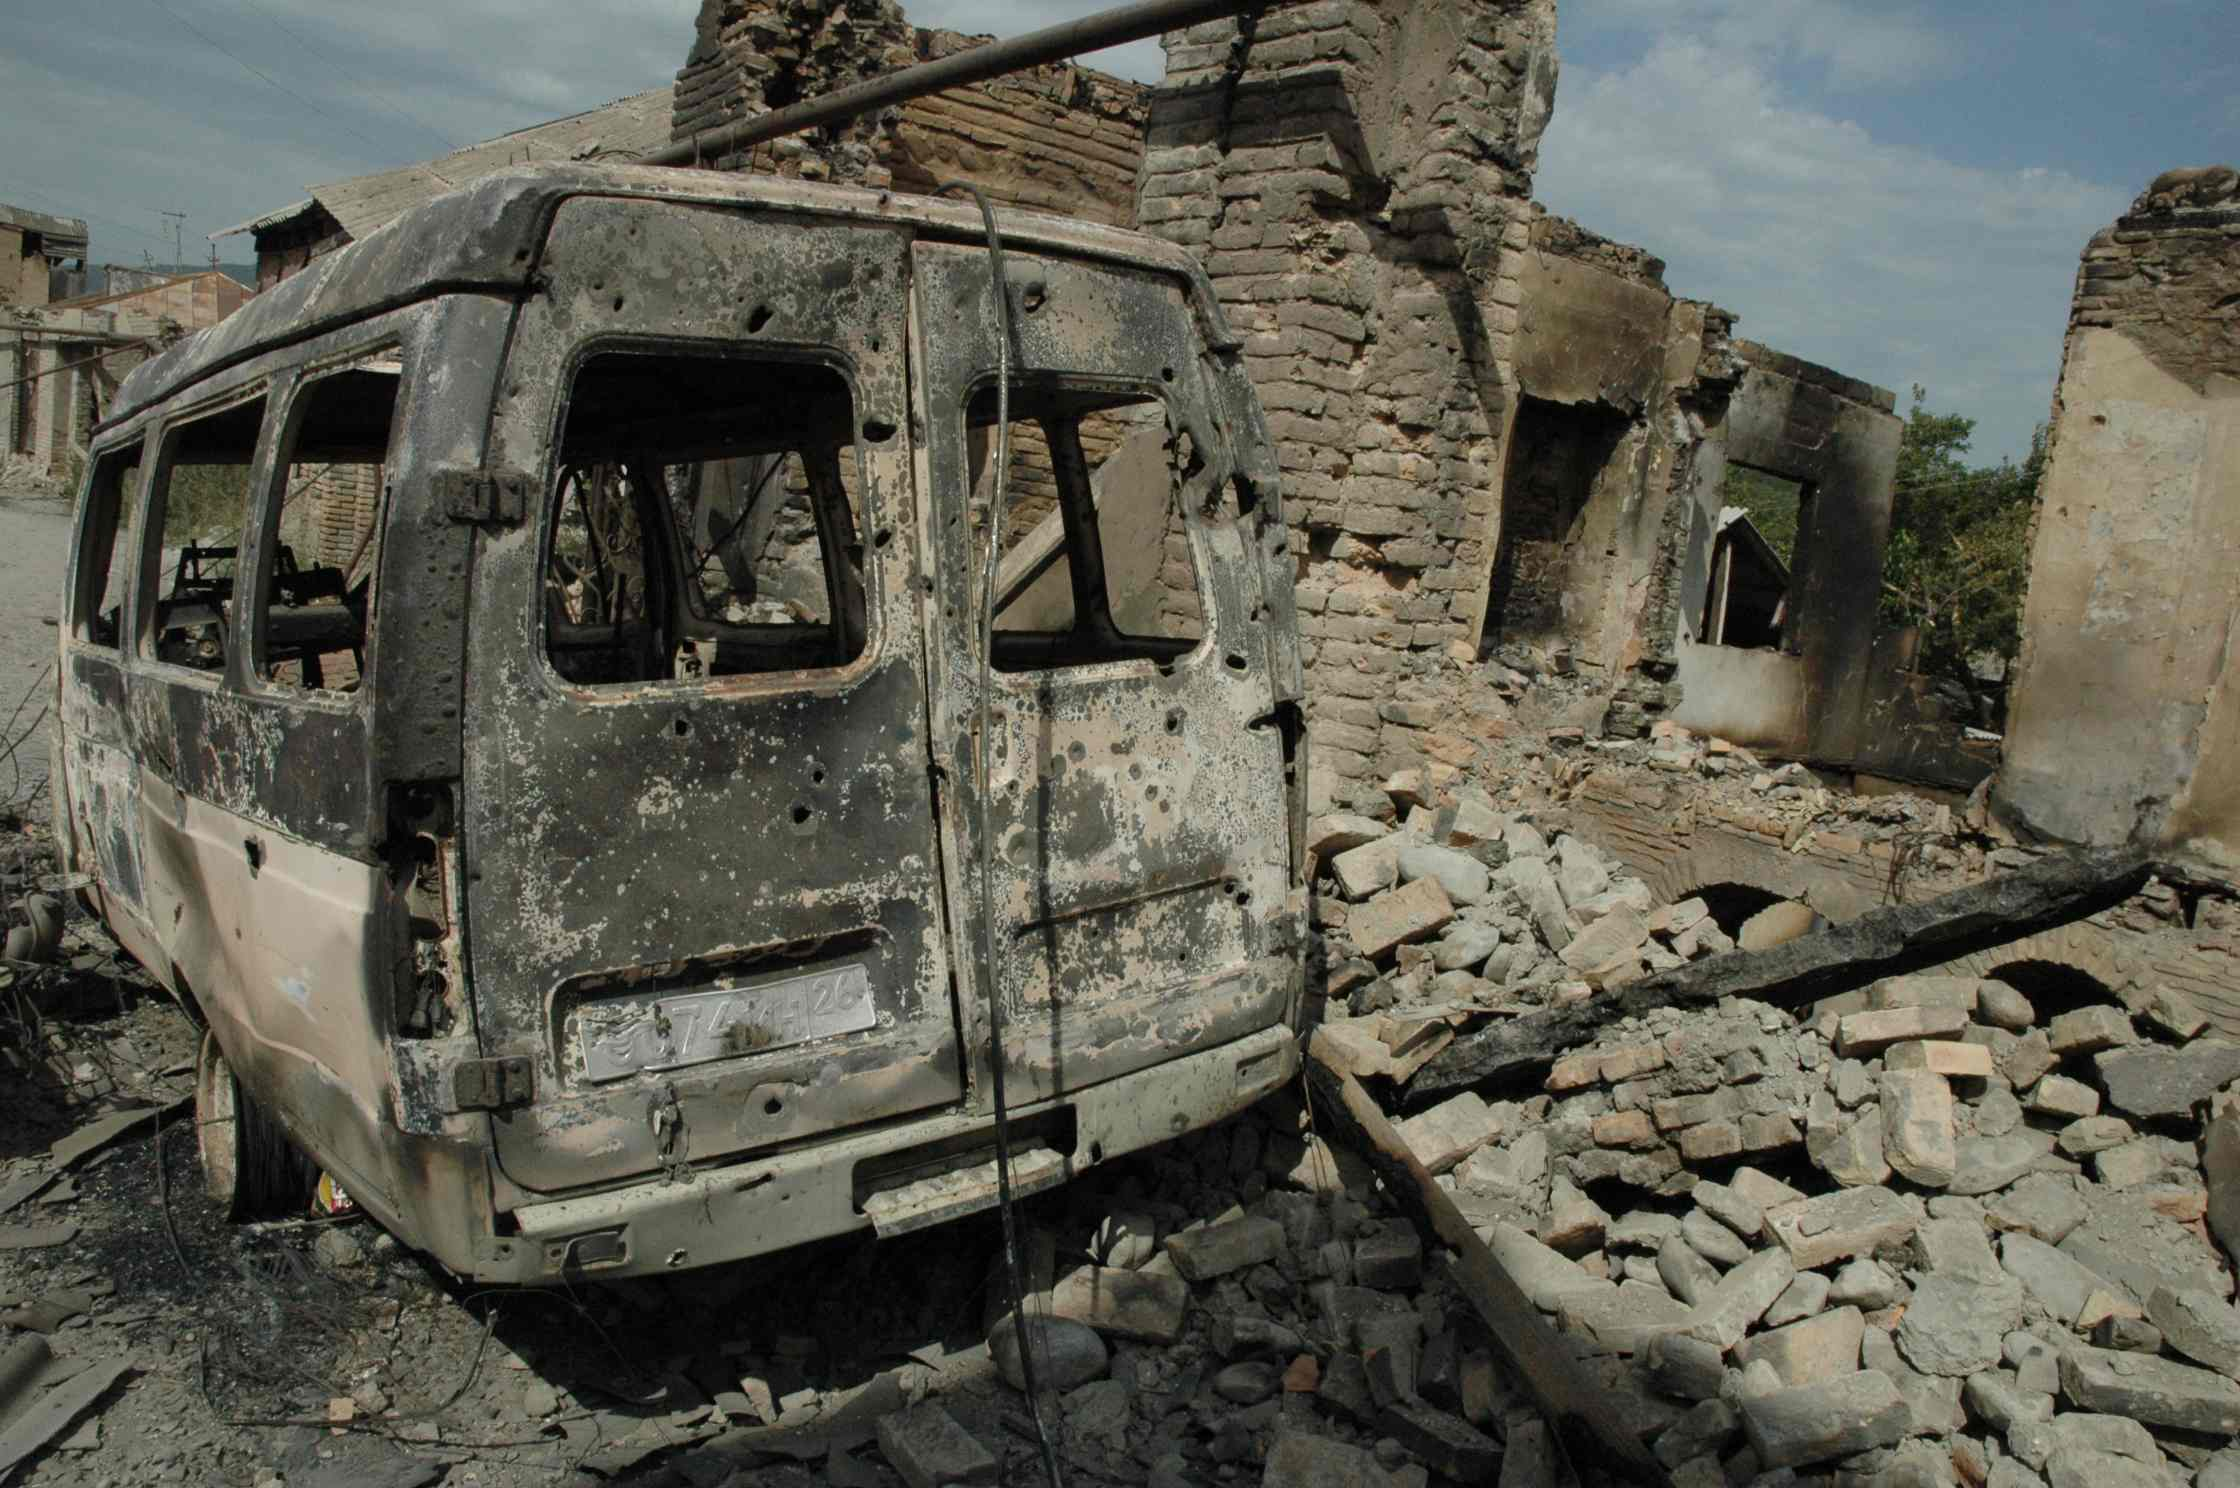 chechnya essay The first chechen war, also well-known as the war in chechnya, was a clash between the russian federation and the chechen republic ichkeria.